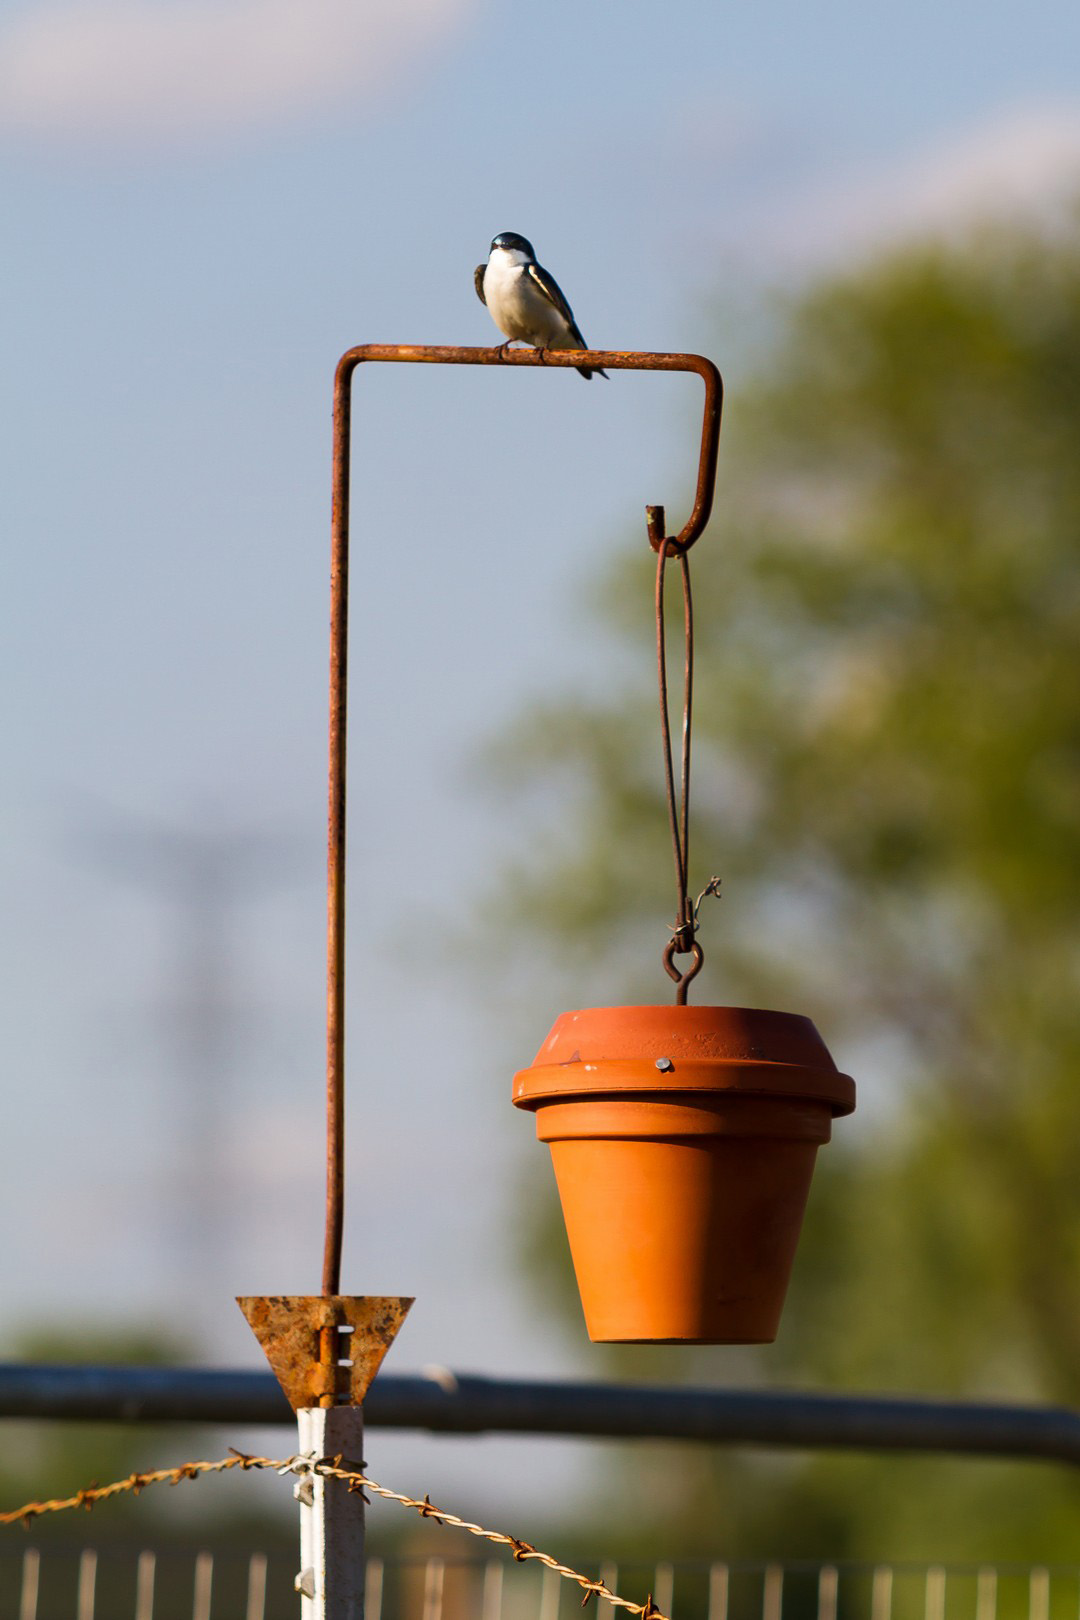 A tree swallow hangs out in the Fermilab Garden Club area on a birdhouse fashioned by Jim Wendt, gardener and retired Fermilab technician. Photo: Elliott McCrory, AD